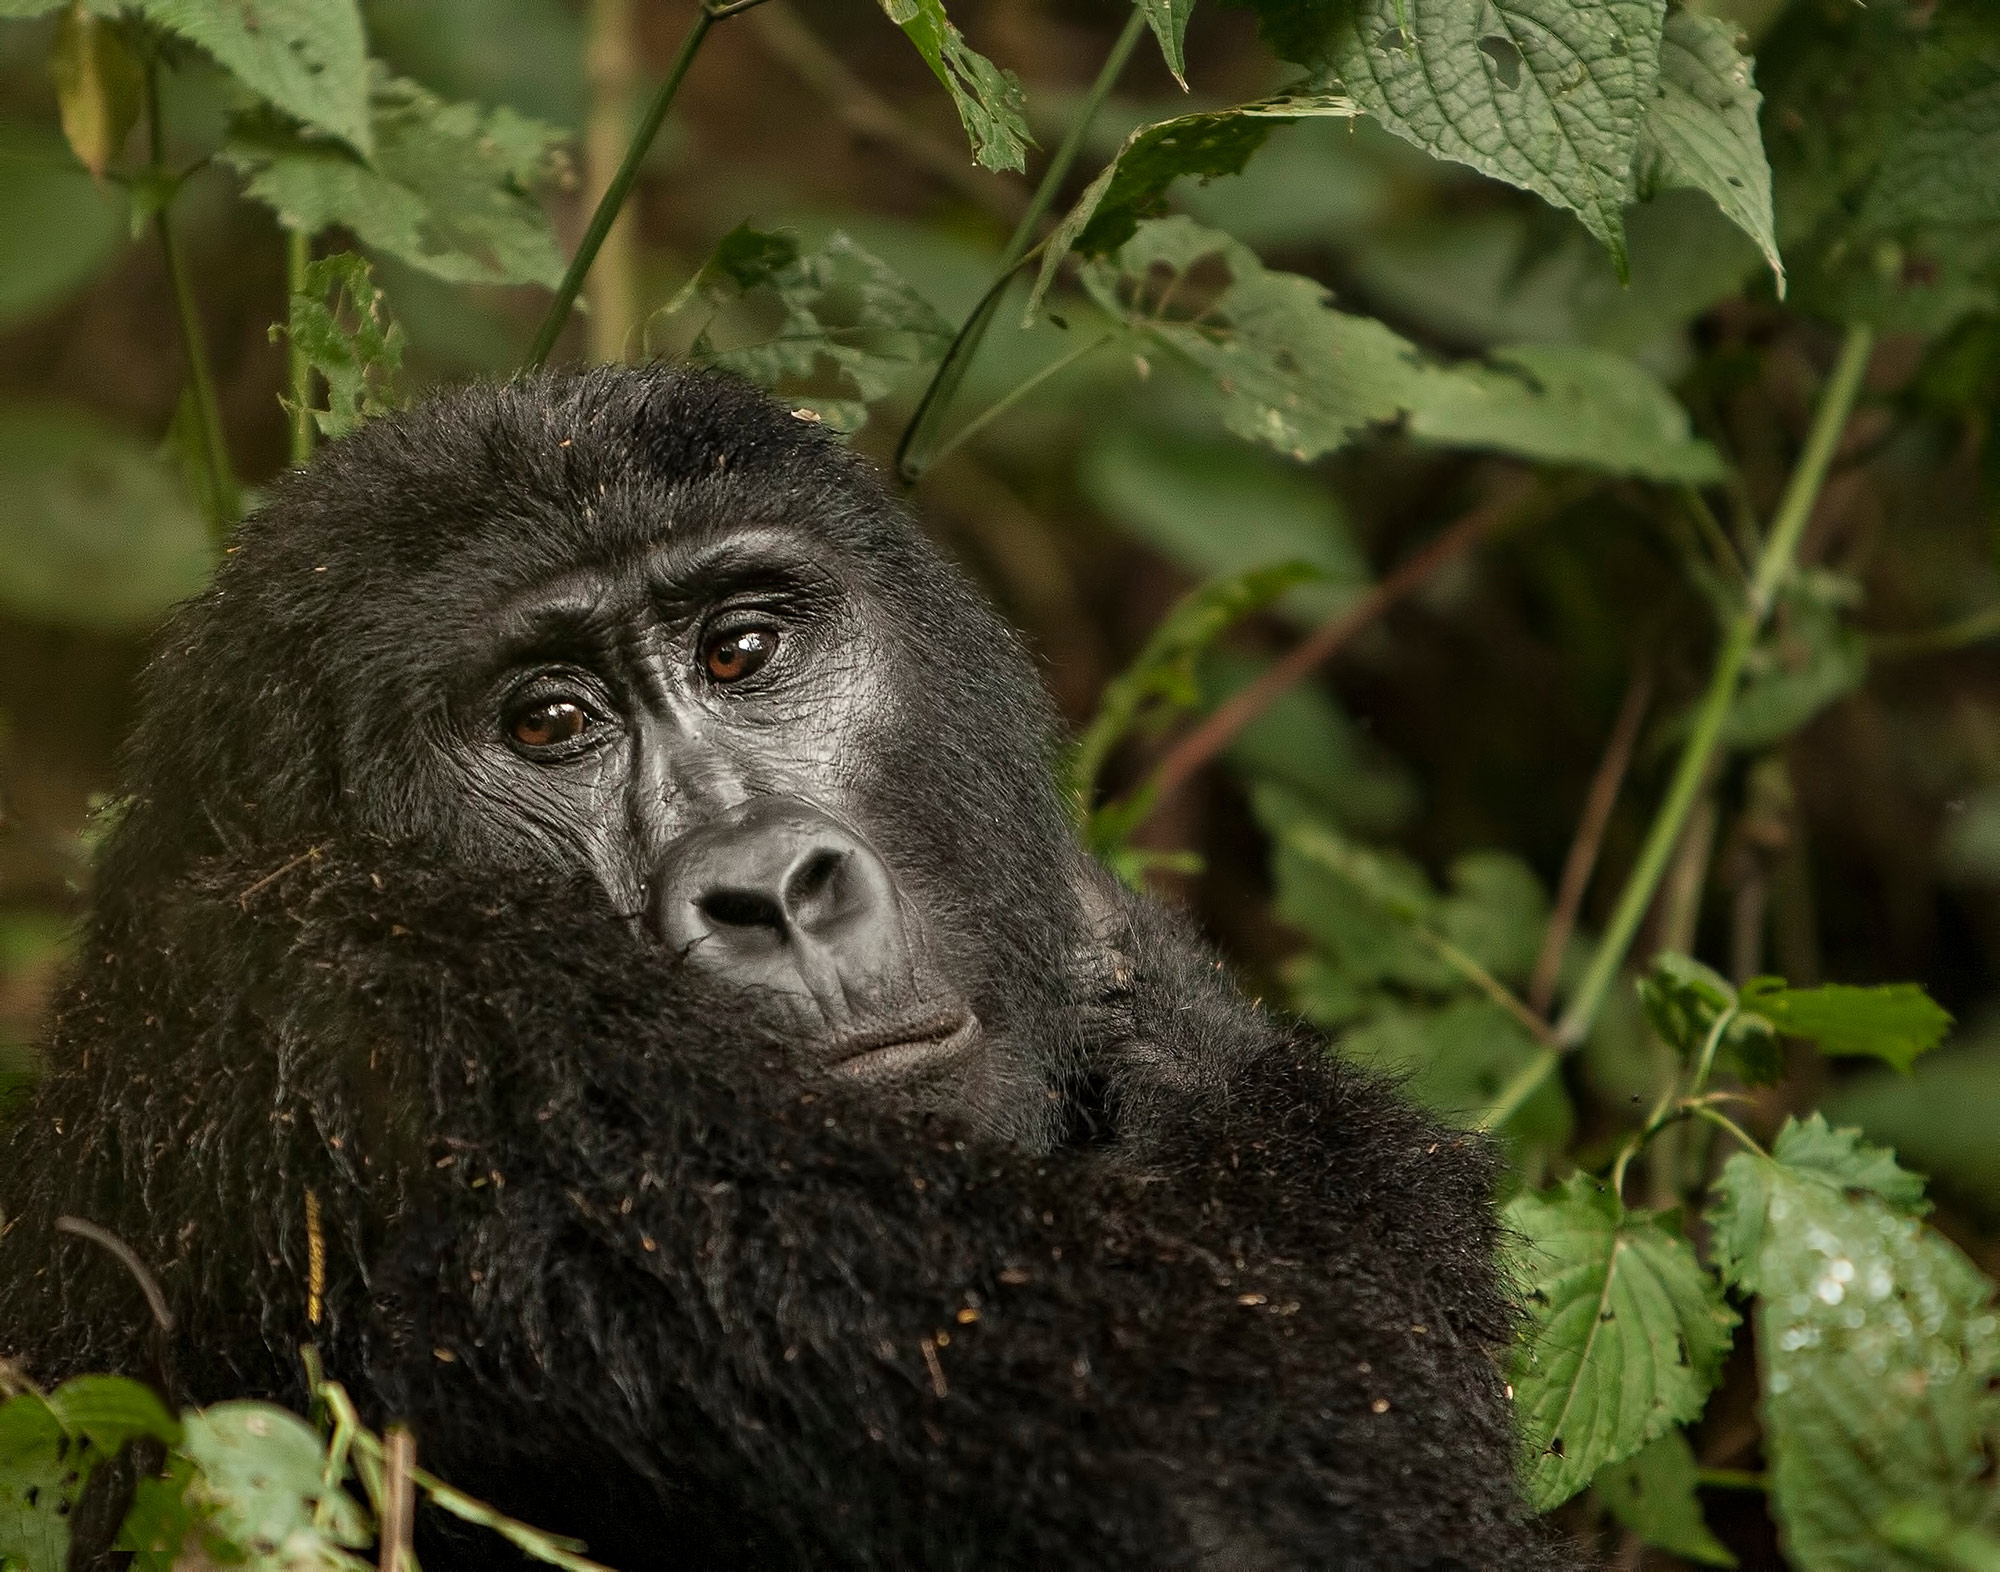 A Mountain gorilla looking straight at the camera